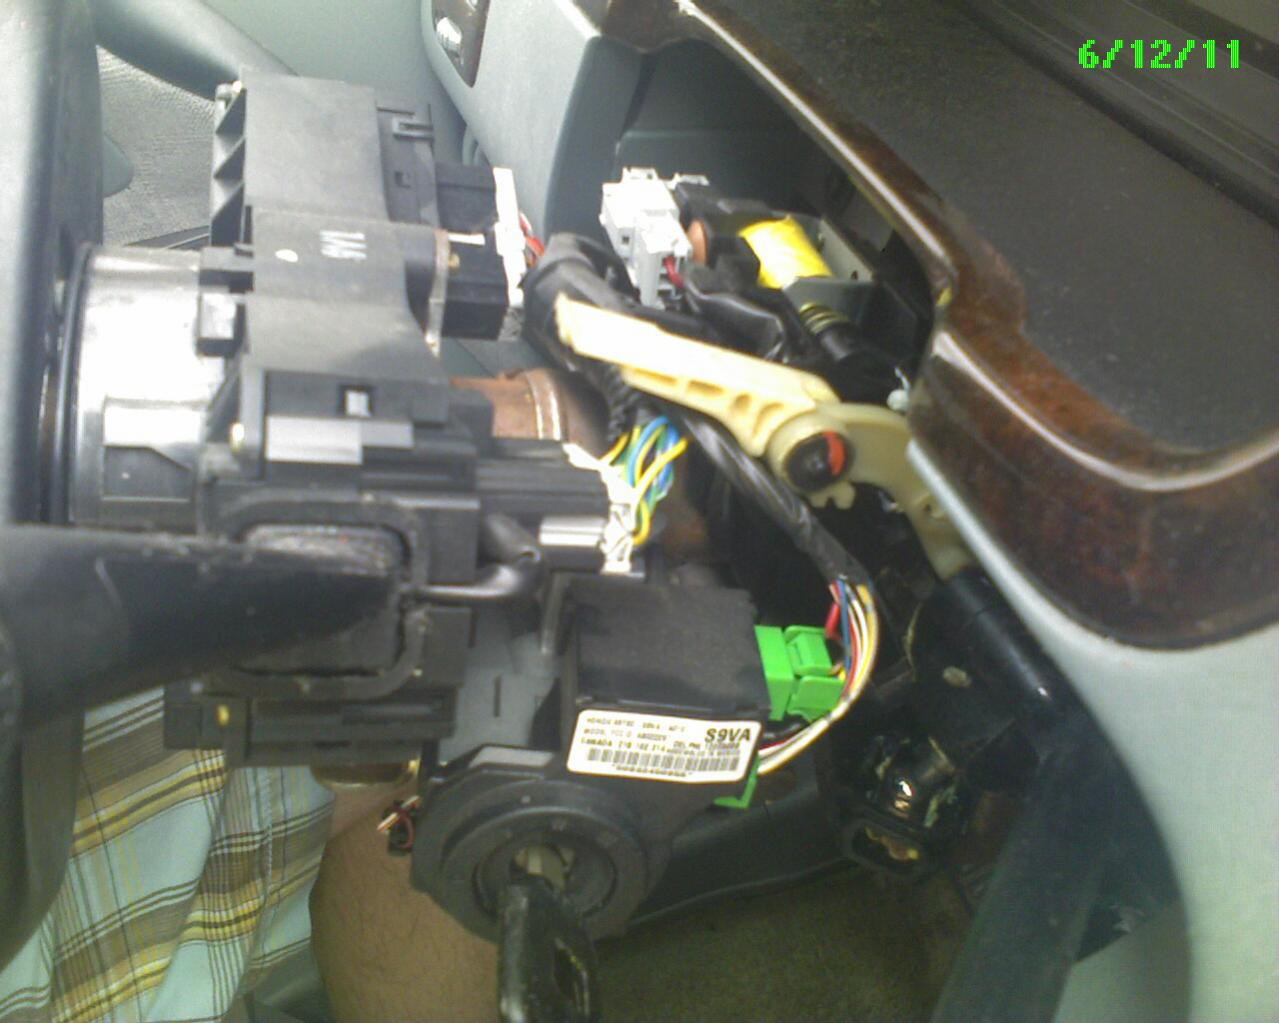 2003 honda civic ignition wiring diagram 2005 scion xb parts click image for larger versionname photo 061211 002